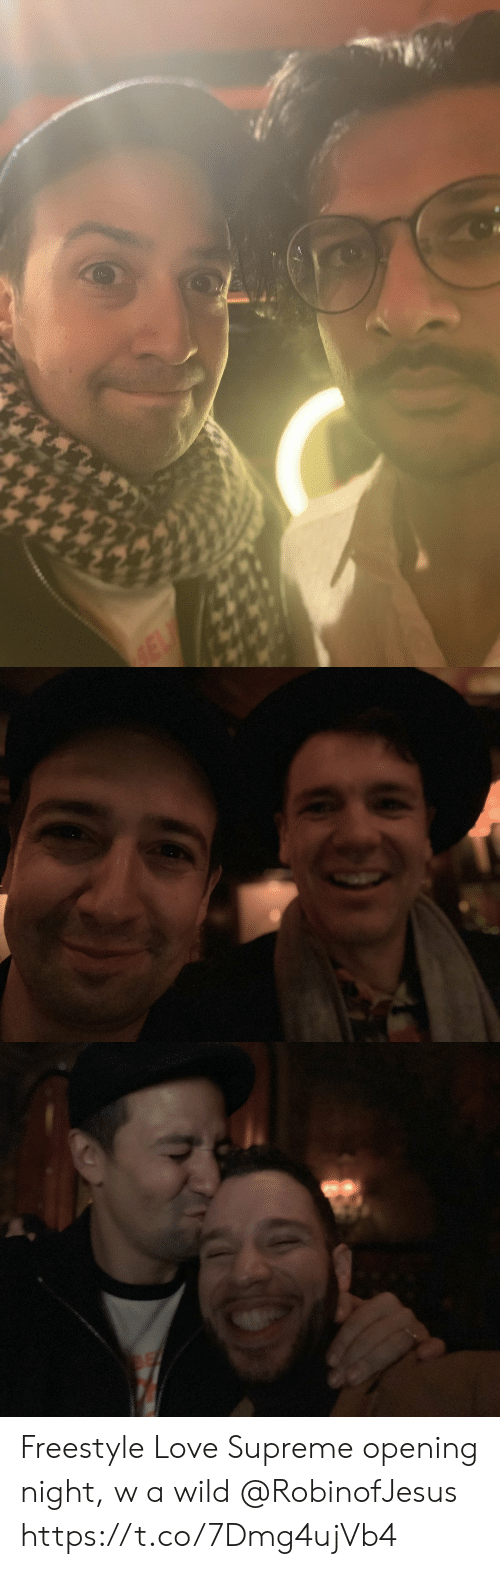 Love, Memes, and Supreme: Freestyle Love Supreme opening night, w a wild @RobinofJesus https://t.co/7Dmg4ujVb4